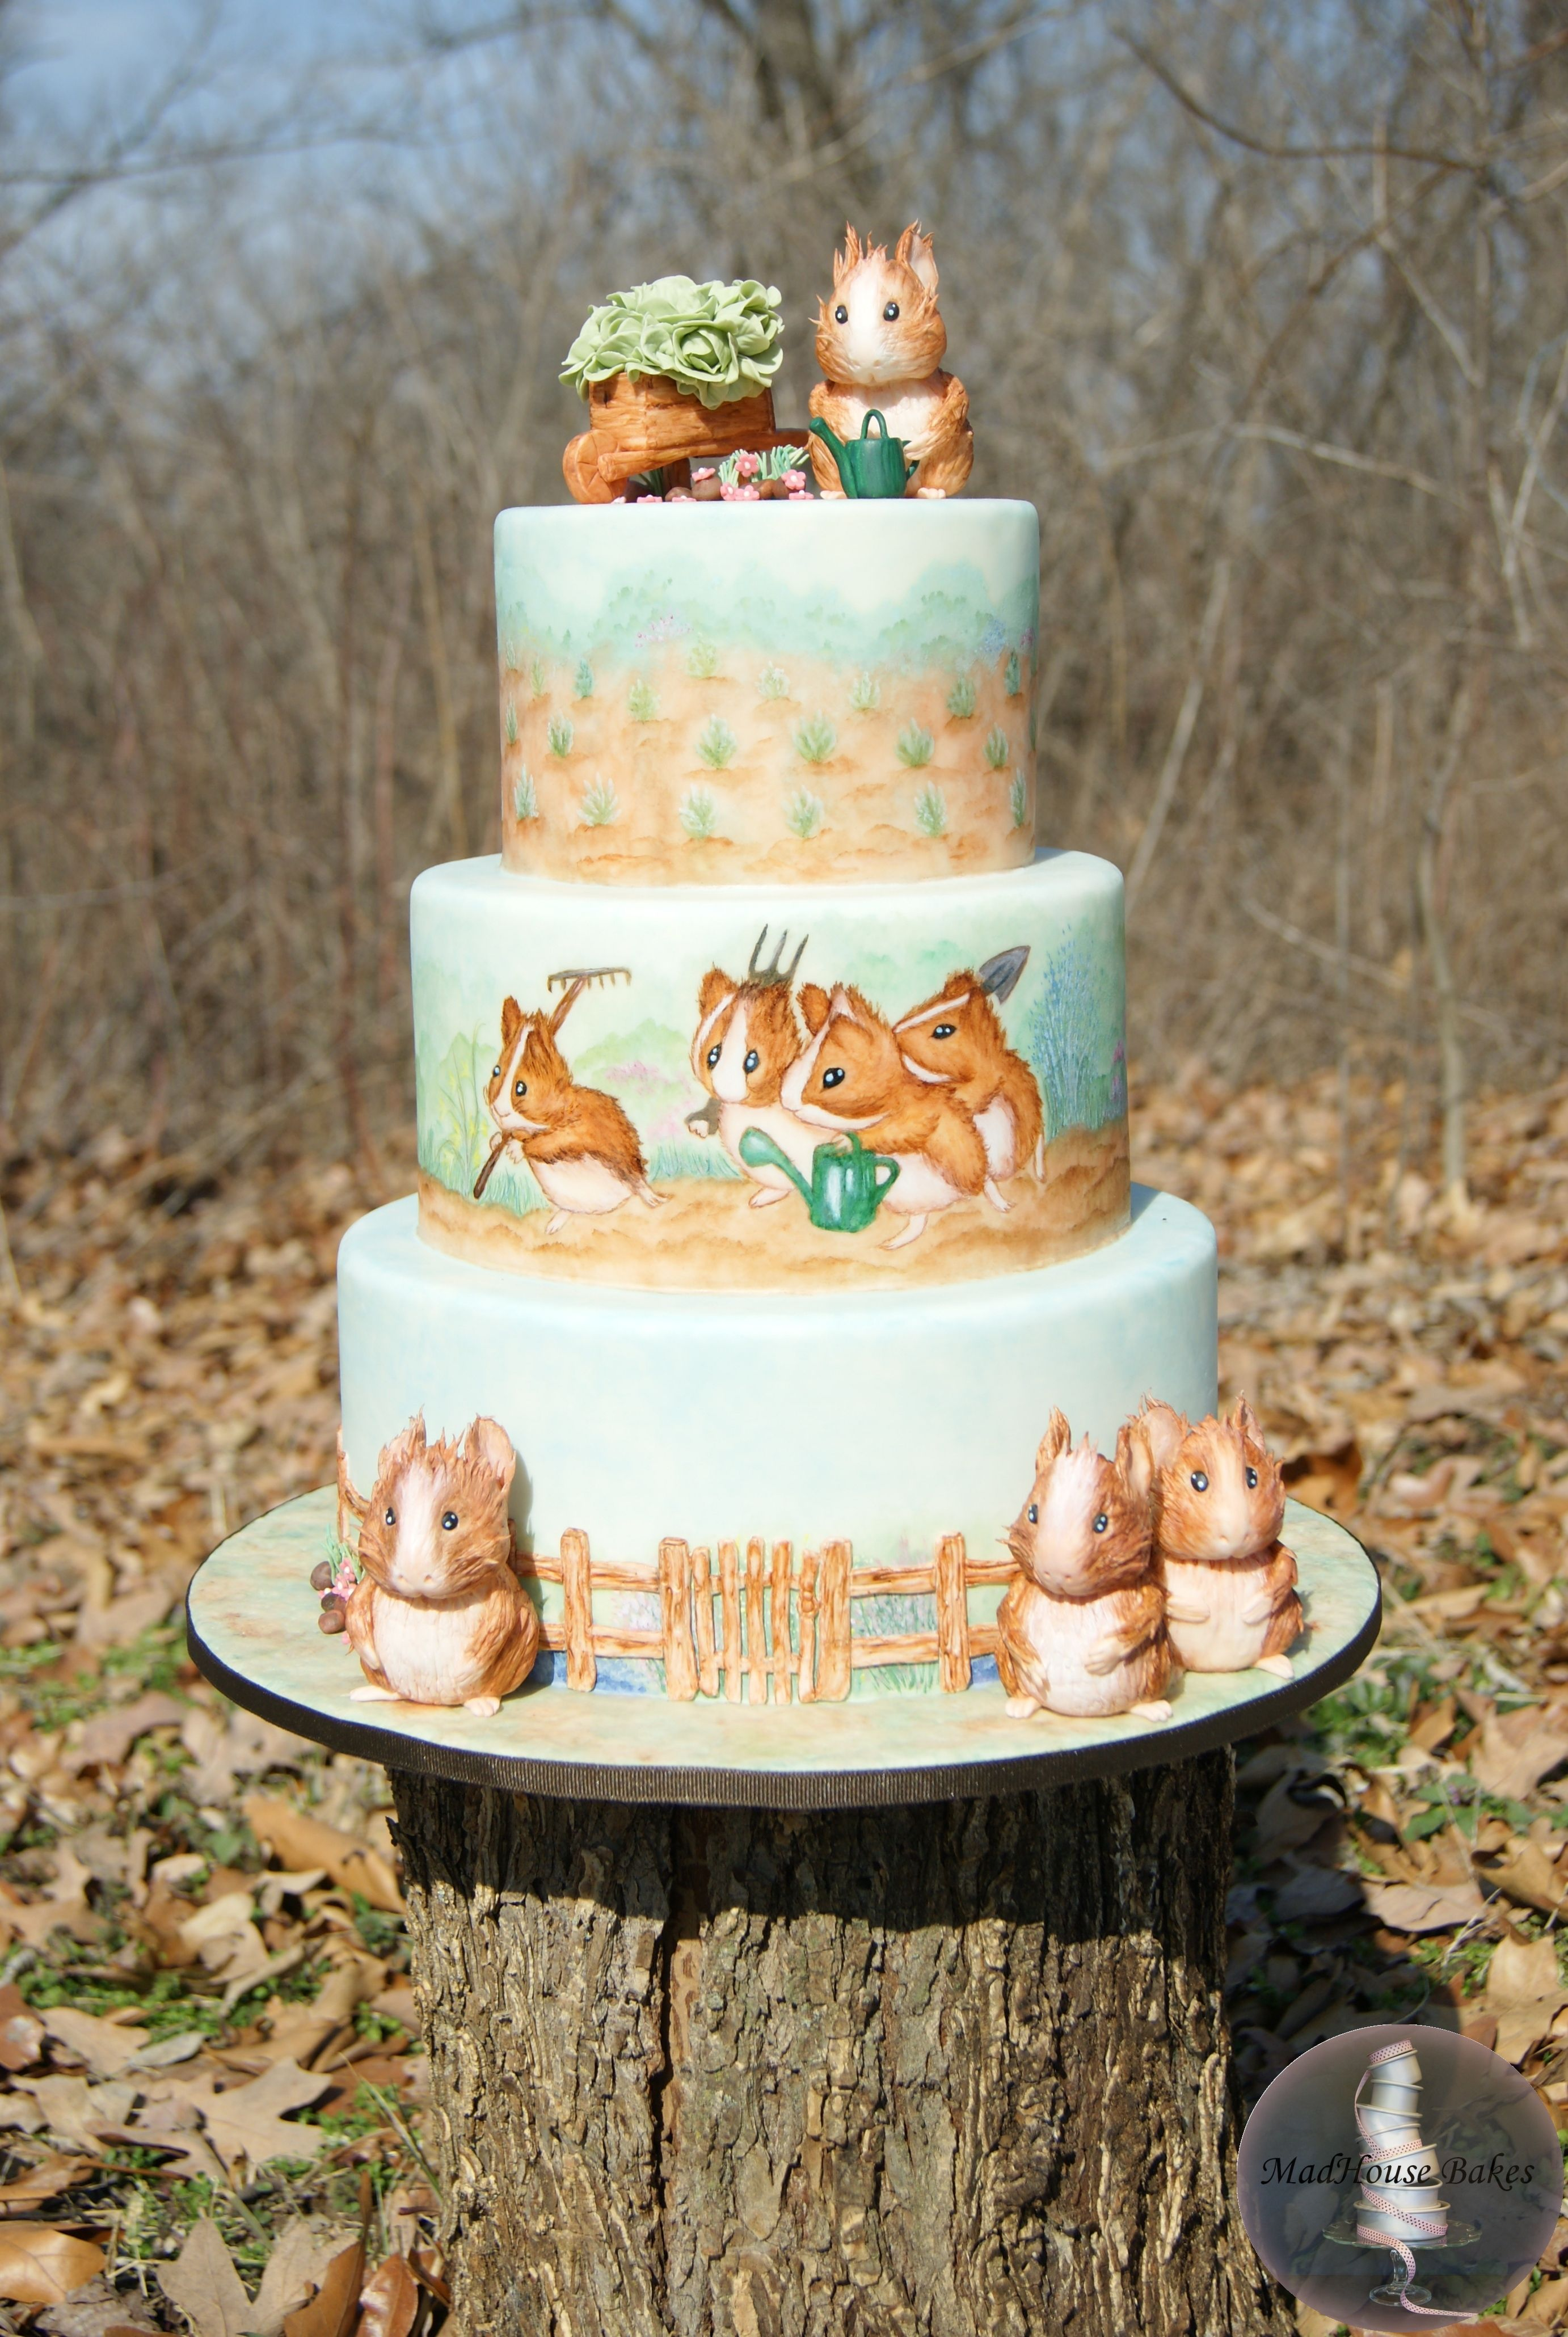 Beatrix Potter Guinea Pig Cake - Cecily Parsley's Nursery Rhymes by Beatrix Potter to use as inspiration. Each tier is hand painted using food colors. All of the guinea pigs are sculpted from gumpaste.